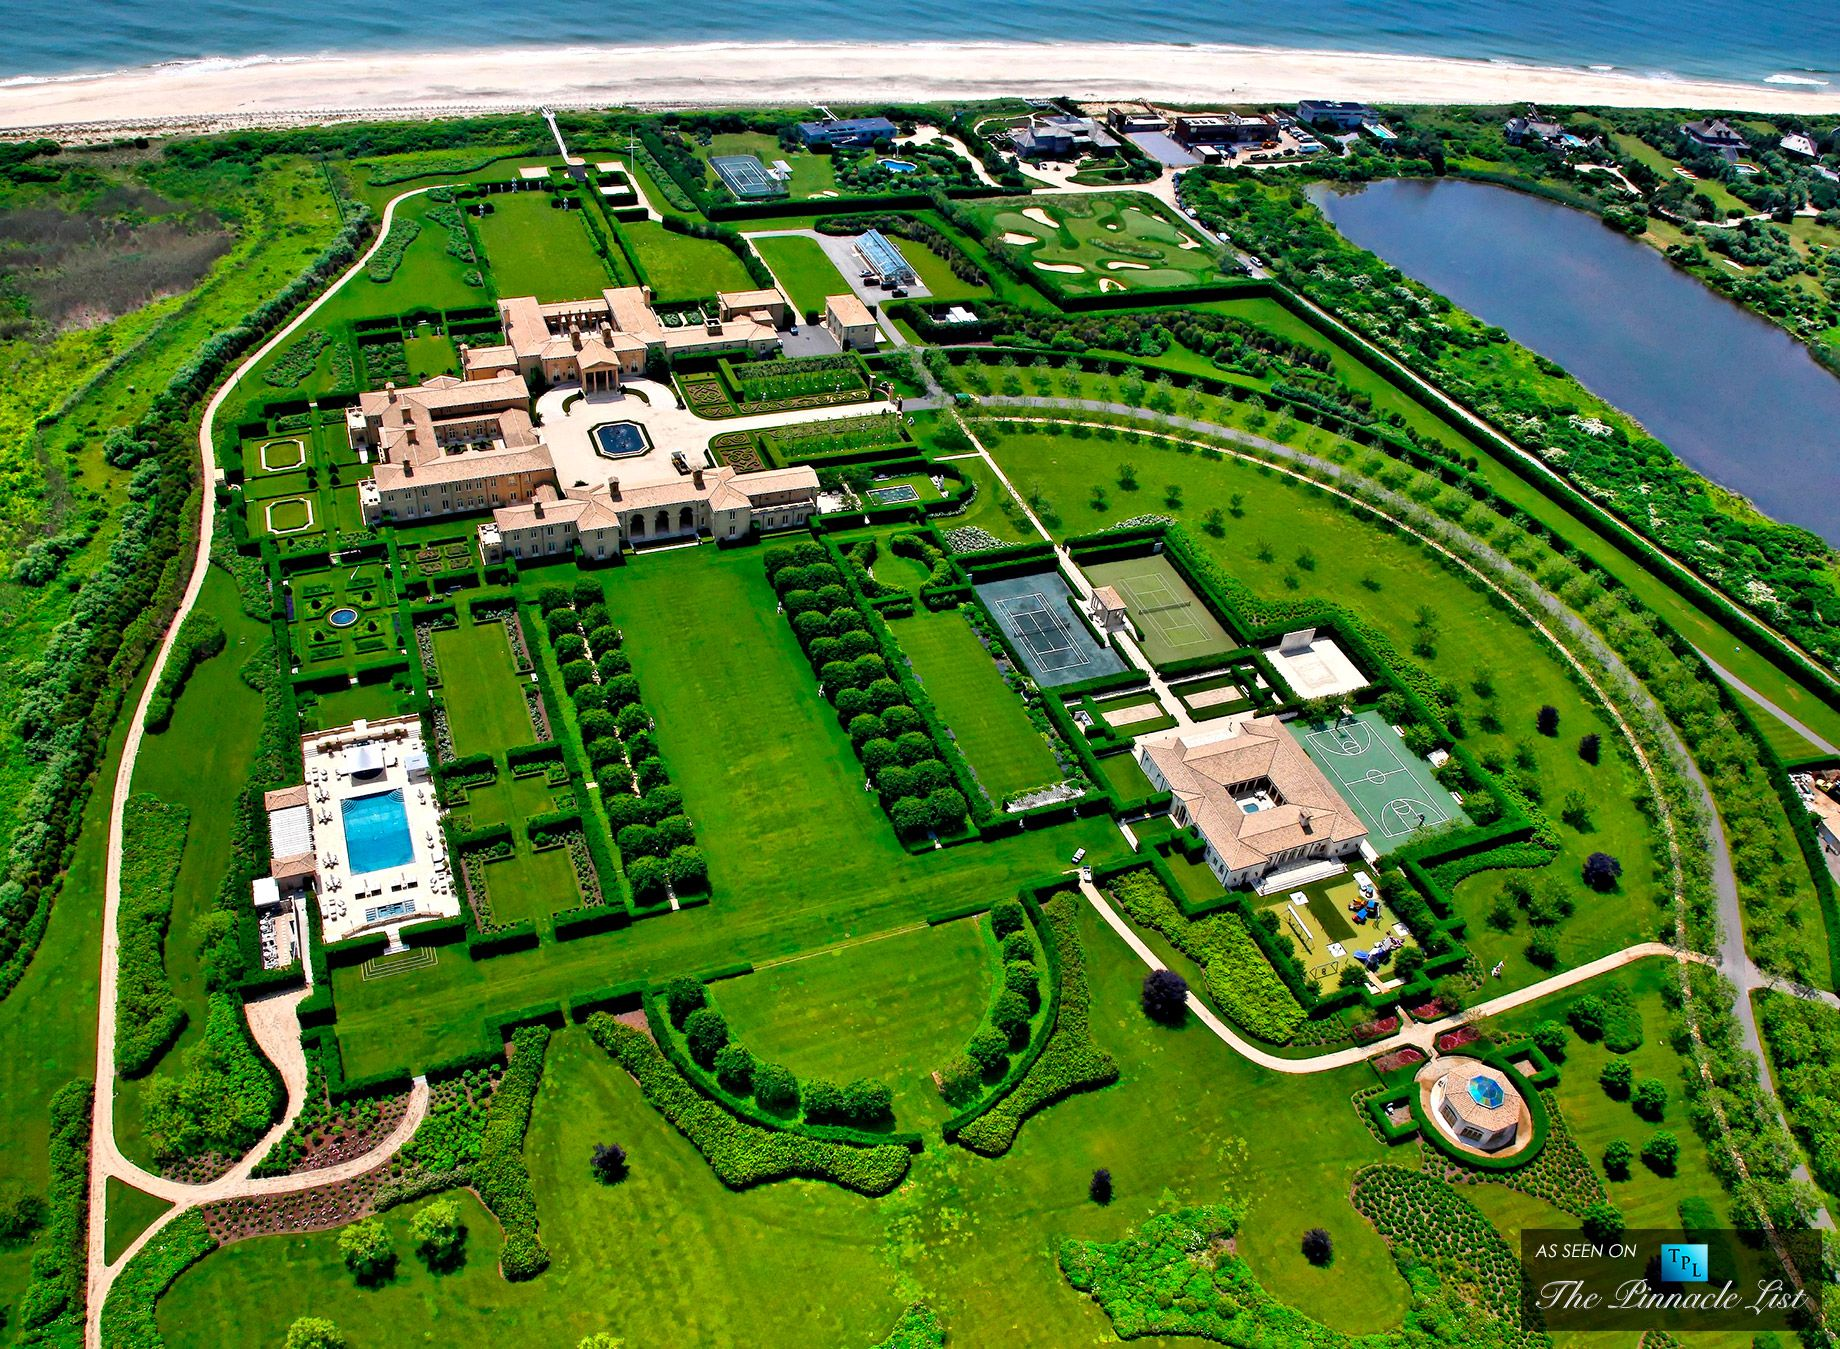 Billionaire Ira Rennert S 200 Million Hamptons Mansion One Of The Largest Homes In America The Pinnacle Li Billionaire Homes Expensive Houses Fancy Houses